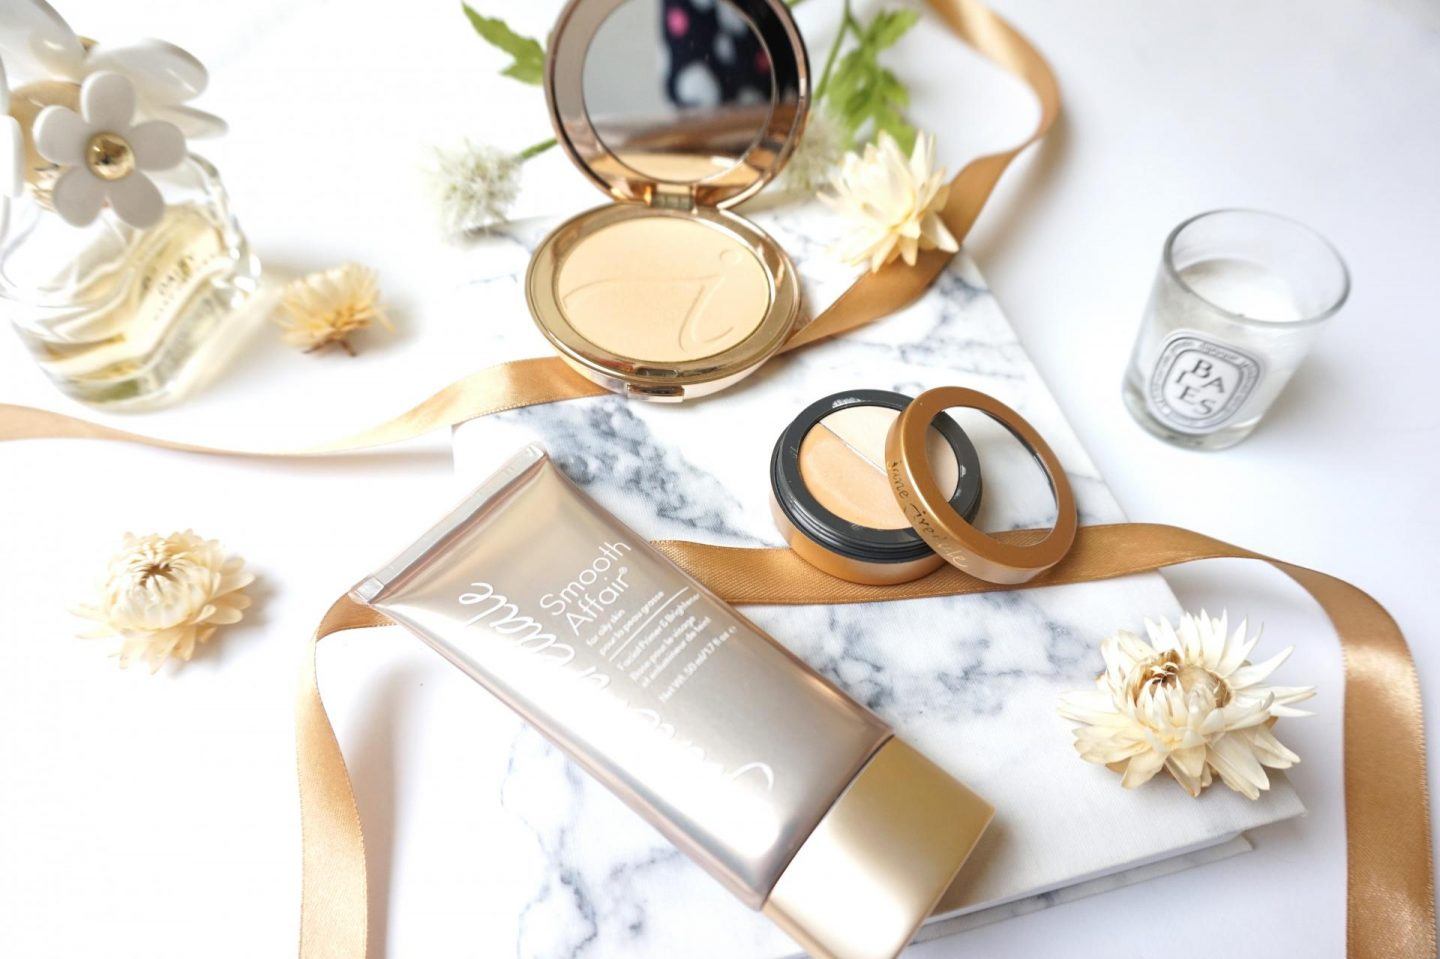 Jane Iredale: The Skin Care Makeup